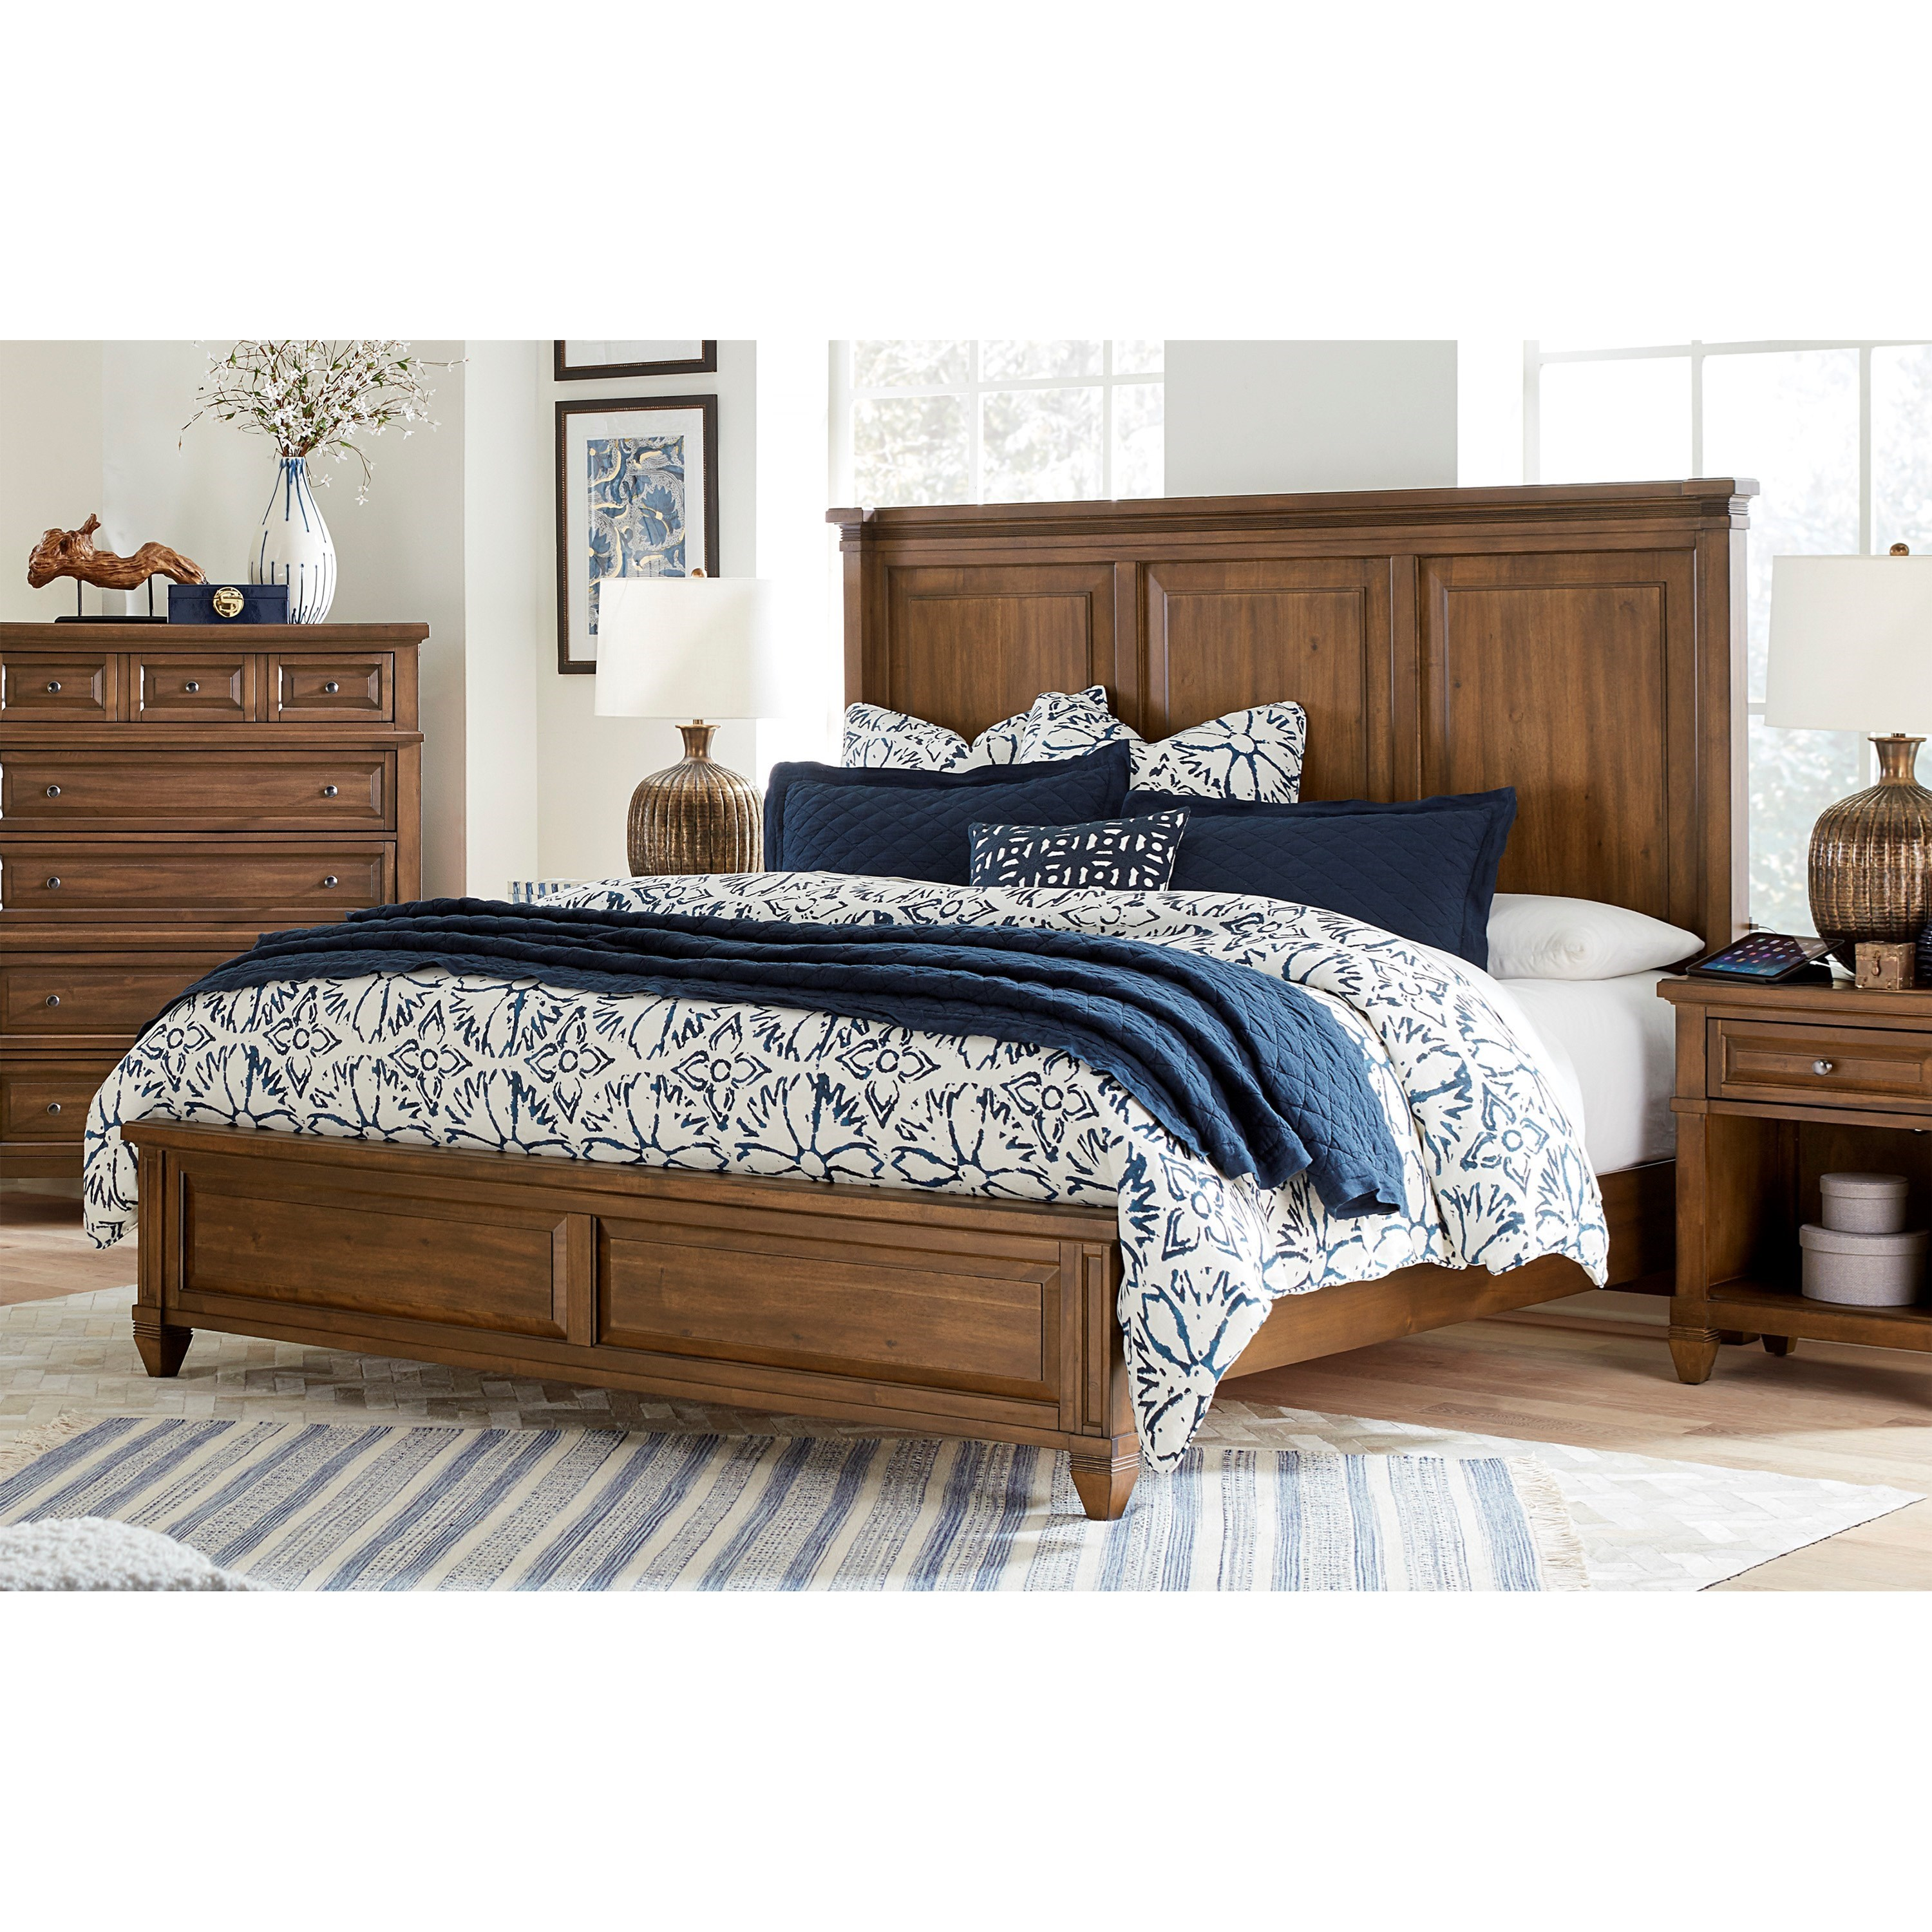 Transitional King Panel Bed With Usb Charging Ports By